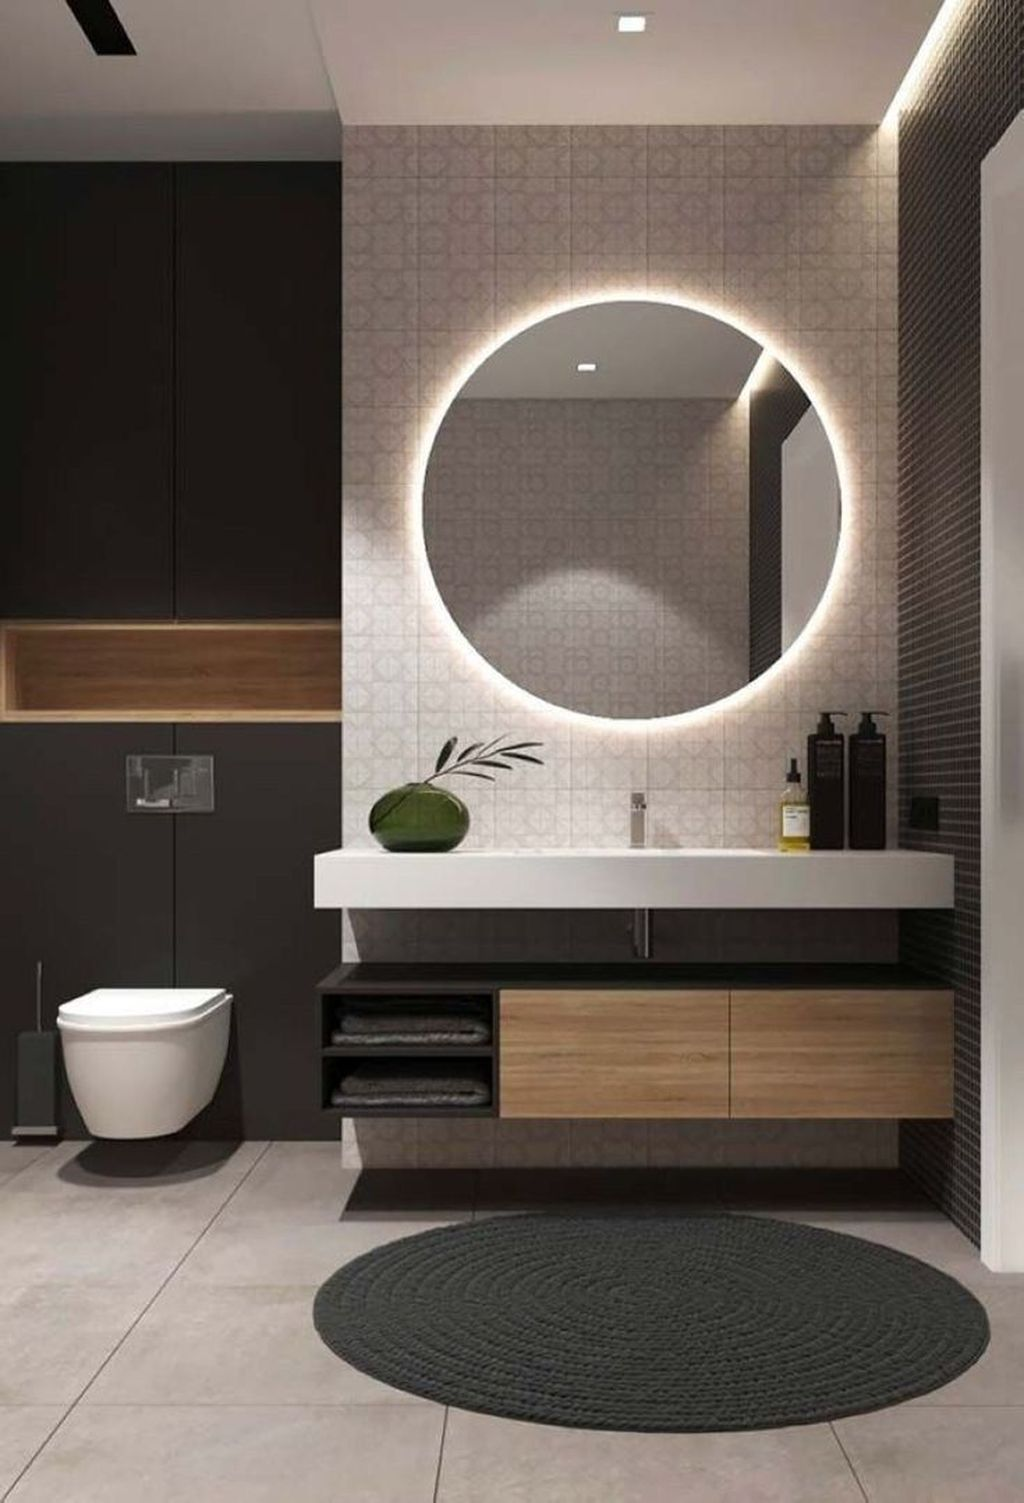 Inspiring Bathroom Interior Design Ideas 19